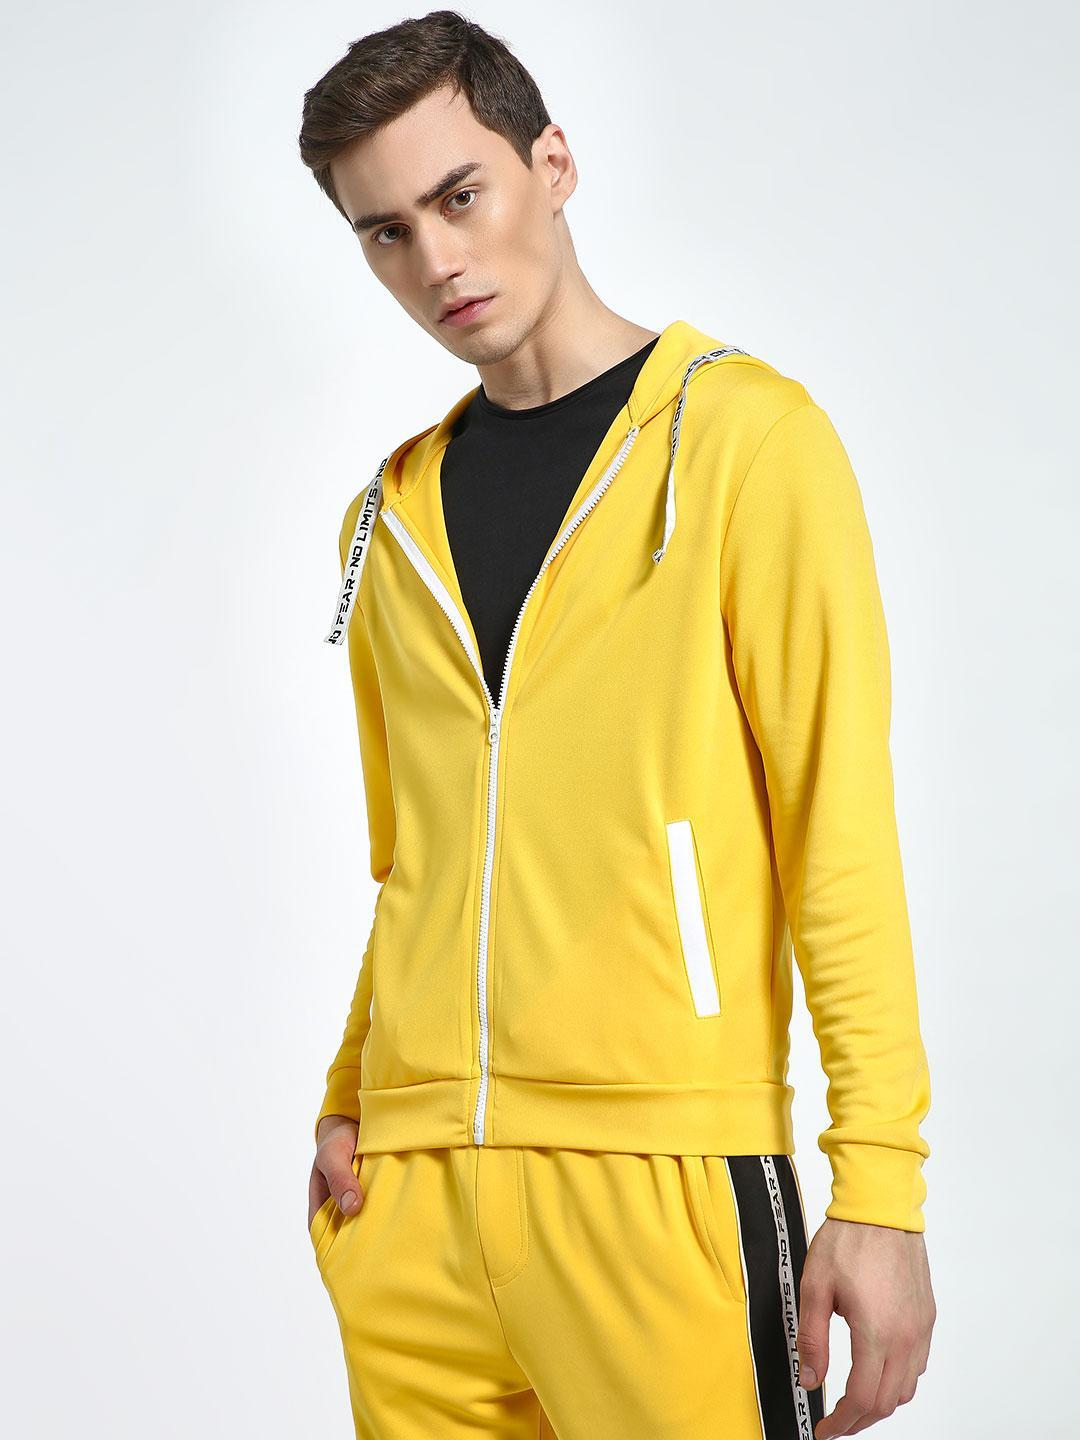 K ACTIVE Yellow KOOVS Text Tape Hooded Jacket 1